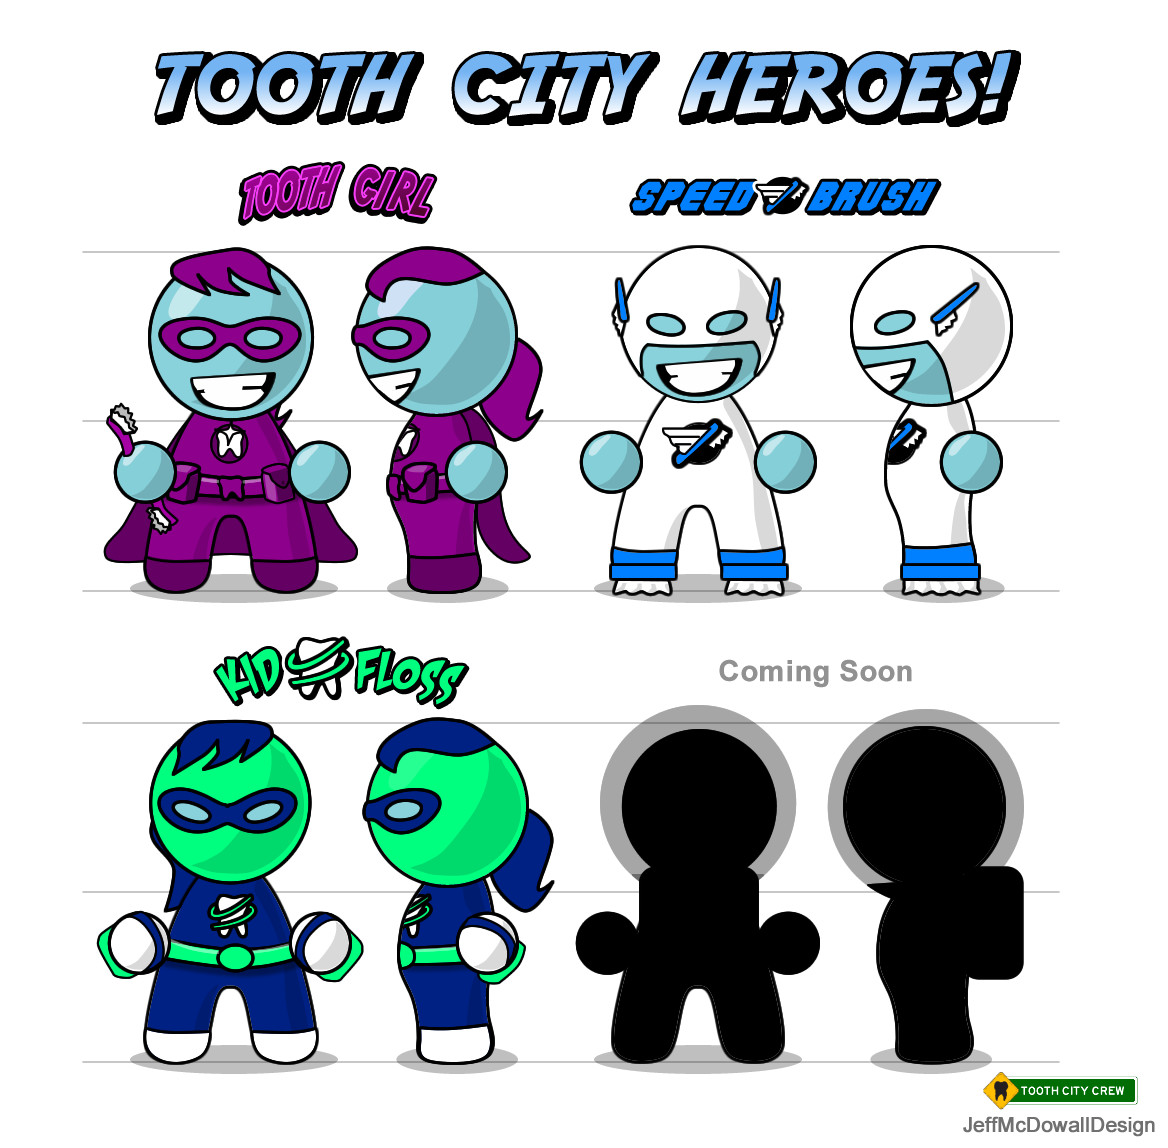 Tooth City Heroes, character lineup